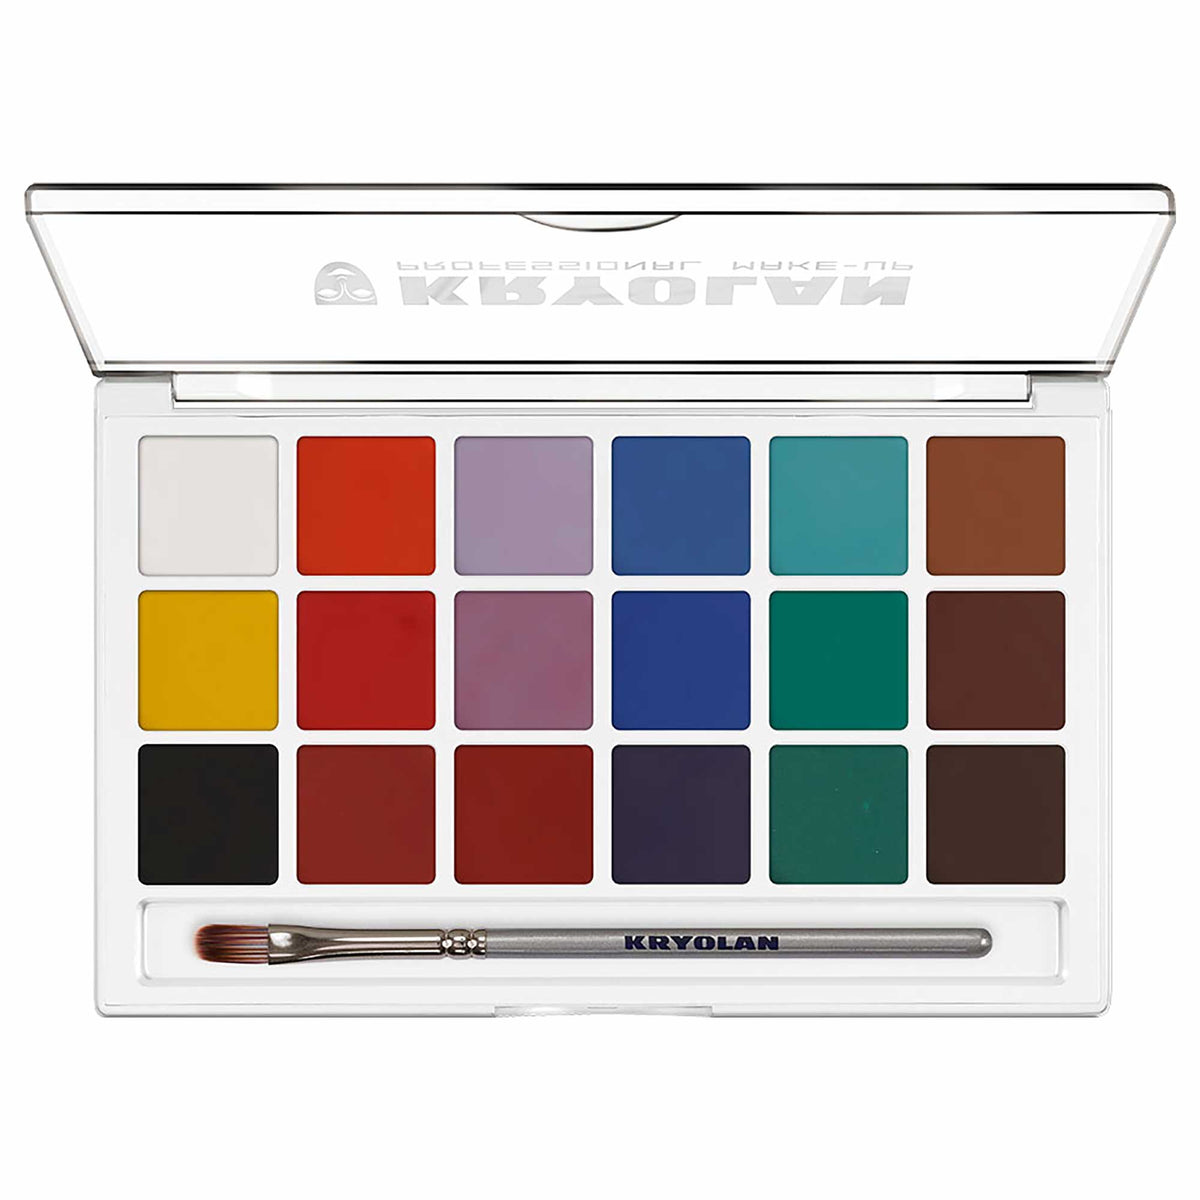 Kryolan AQUACOLOR 18 Palette - Face & Body Paint